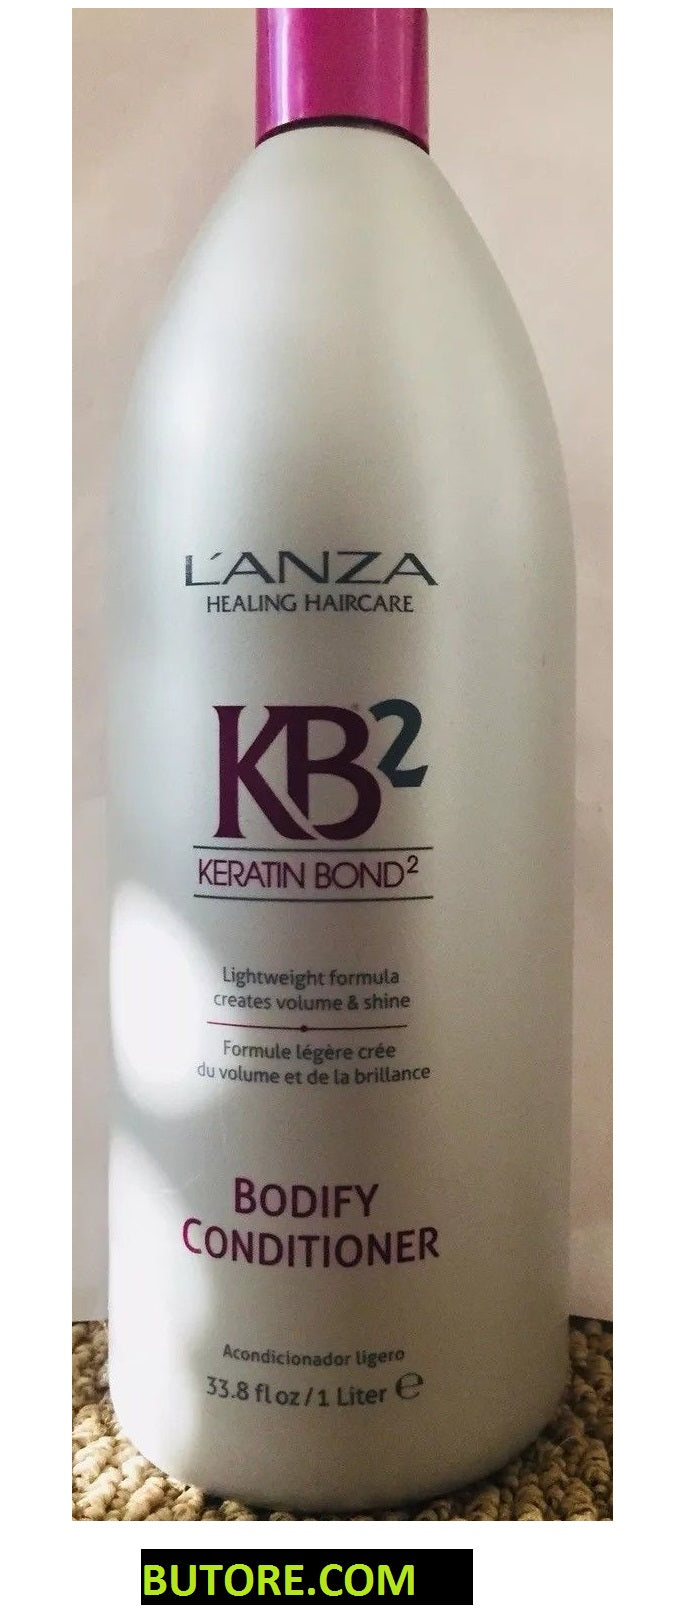 Lanza KB2 Keratin Bond Bodify Conditioner 33.8 oz.